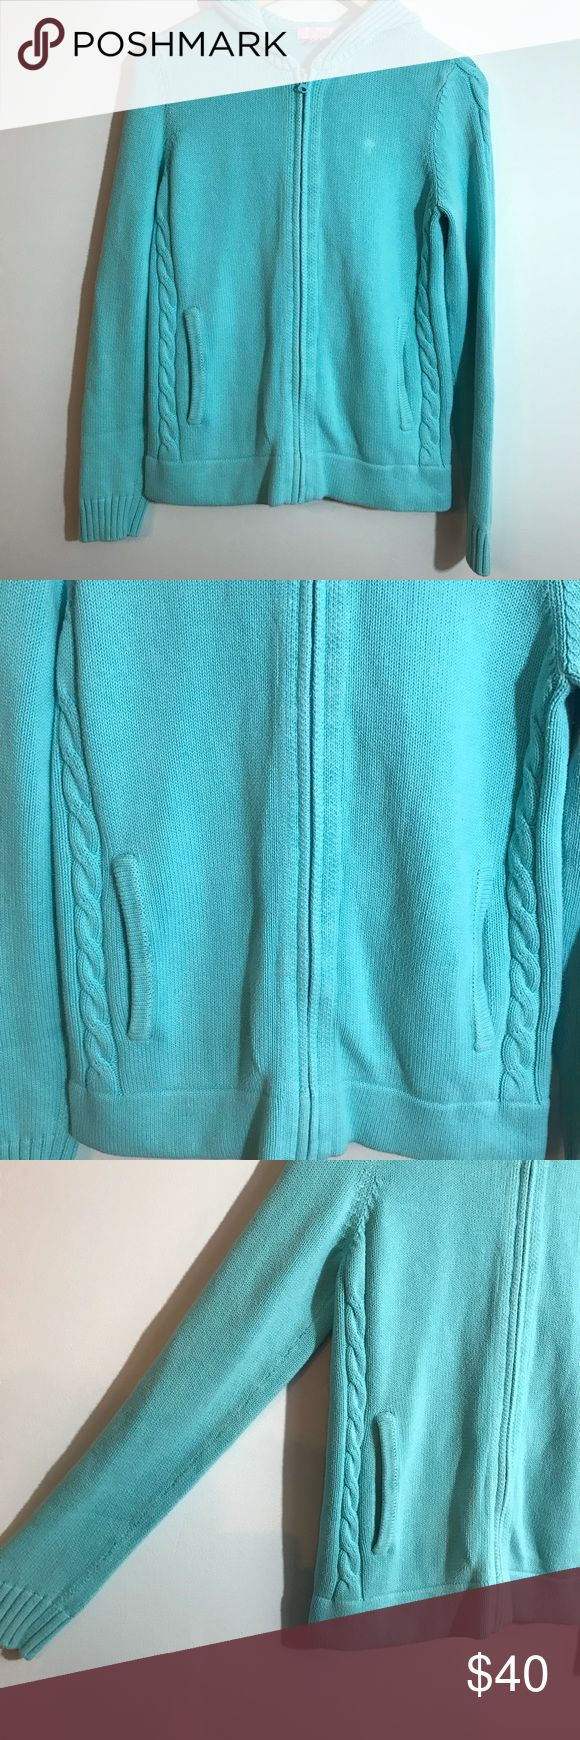 "Lilly Pulitzer Blue Zip Up Hooded Sweater Medium Gently used condition. Super soft and cozy. Full zipper, 2 front pockets and a hood. Size medium. Measurements taken laid flat and zipped: bust approximately 19"", length approximately 24"". Check out my closet for the same sweater in pink! Lilly Pulitzer Sweaters Cardigans"